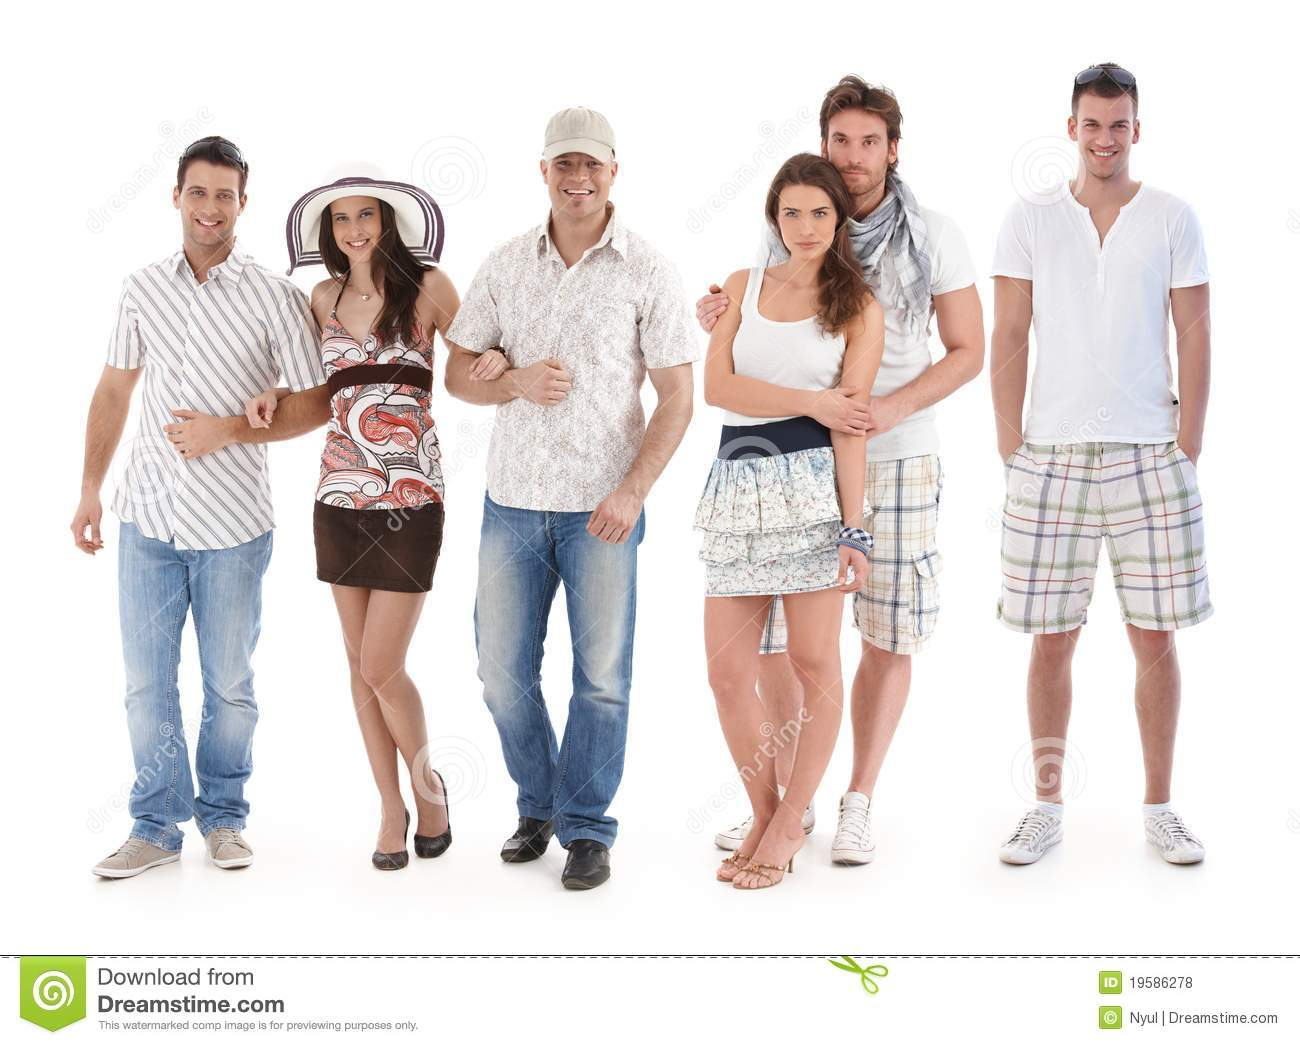 Group Portrait Of Young People In Summer Clothing Stock Photo Image Of Fashion Fellowship